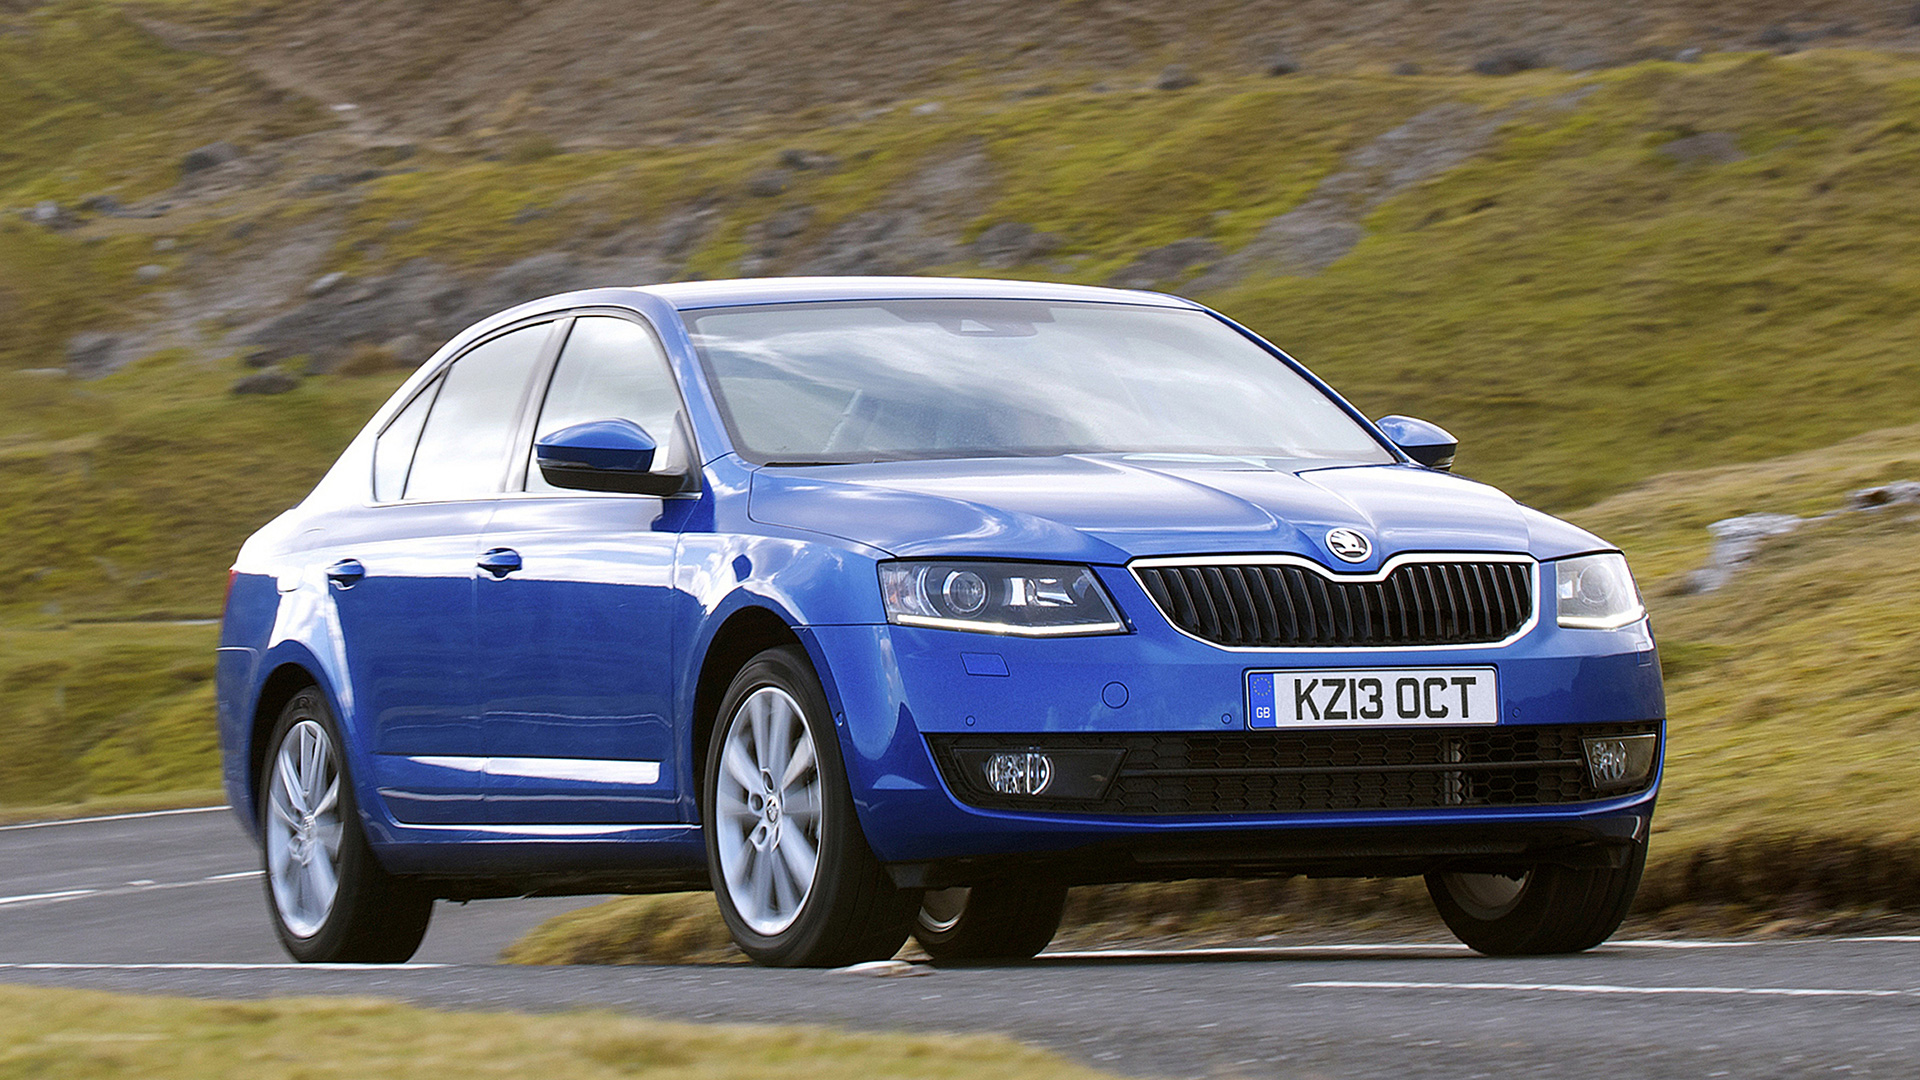 find used skoda octavia cars for sale on auto trader uk. Black Bedroom Furniture Sets. Home Design Ideas